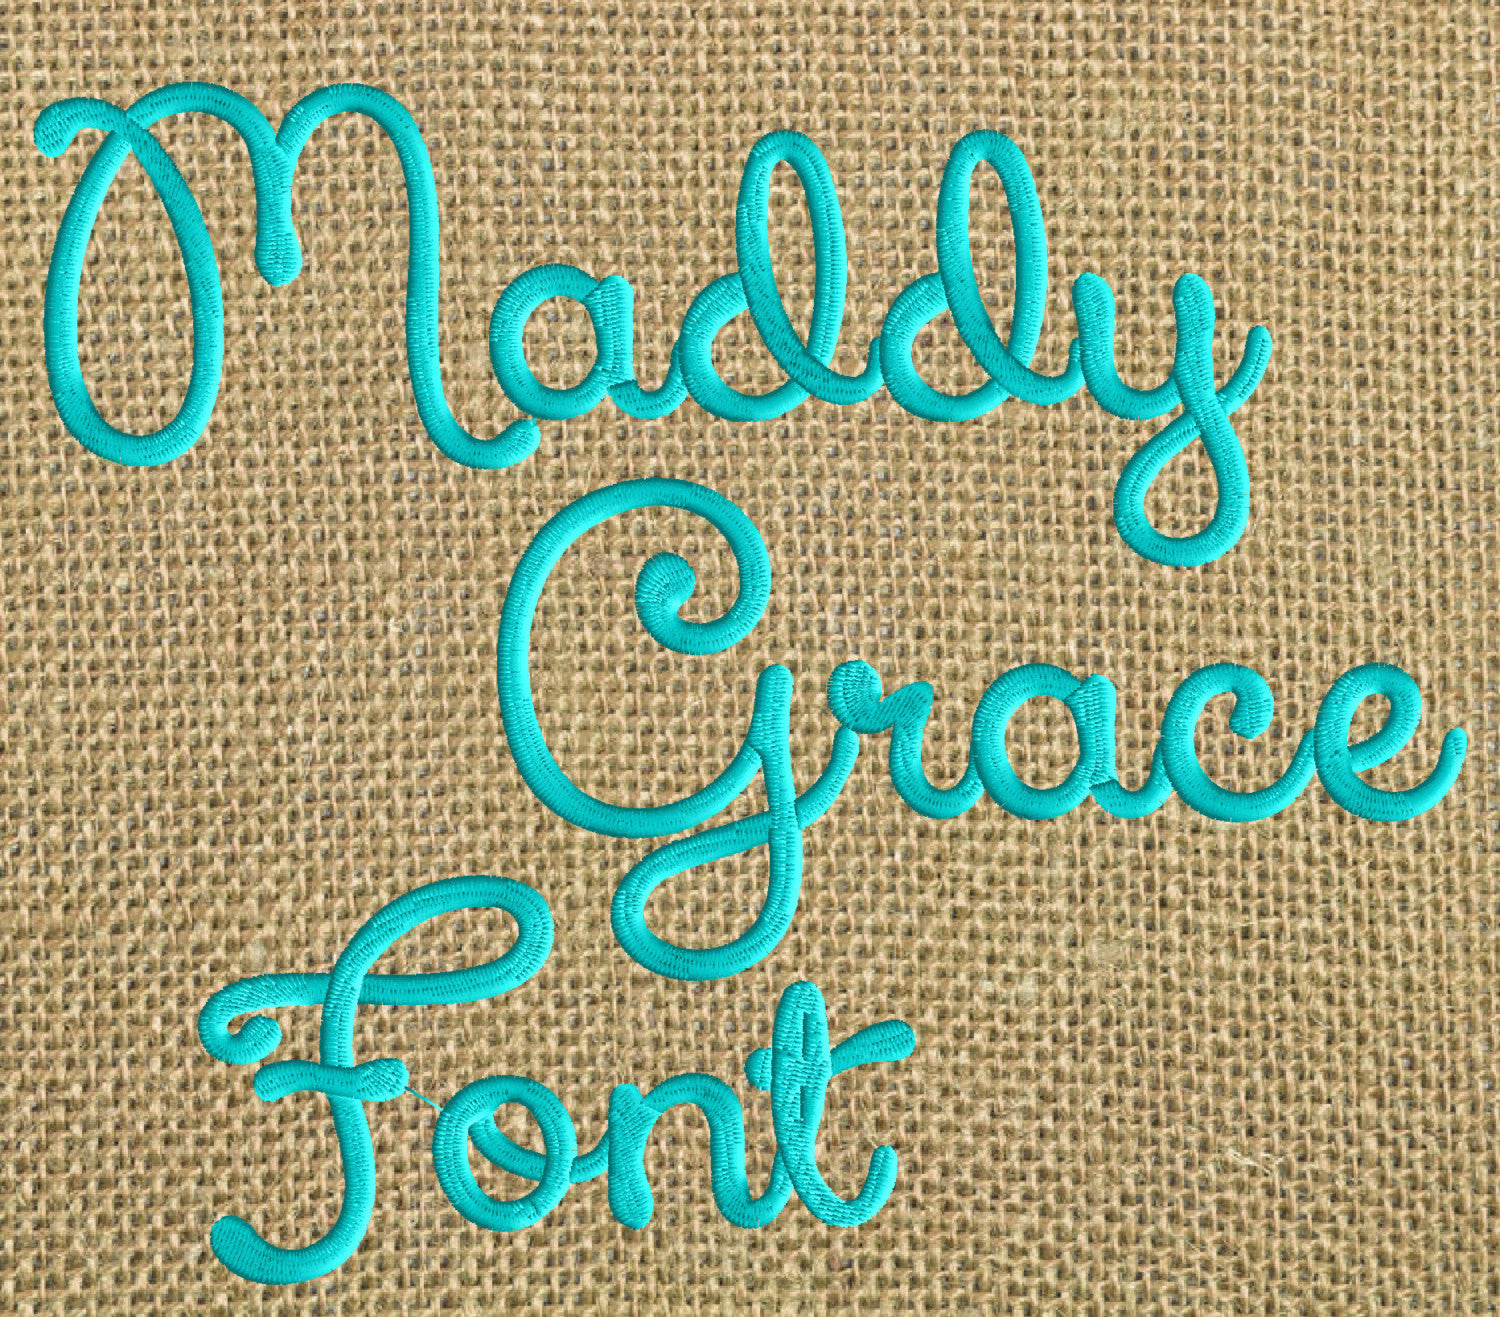 "Madelynn Grace Full 1.5"" Font with symbols & numbers Embroidery File - EMBROIDERY DESIGN FILE - Instant download - Dst Hus Jef Pes Exp format"